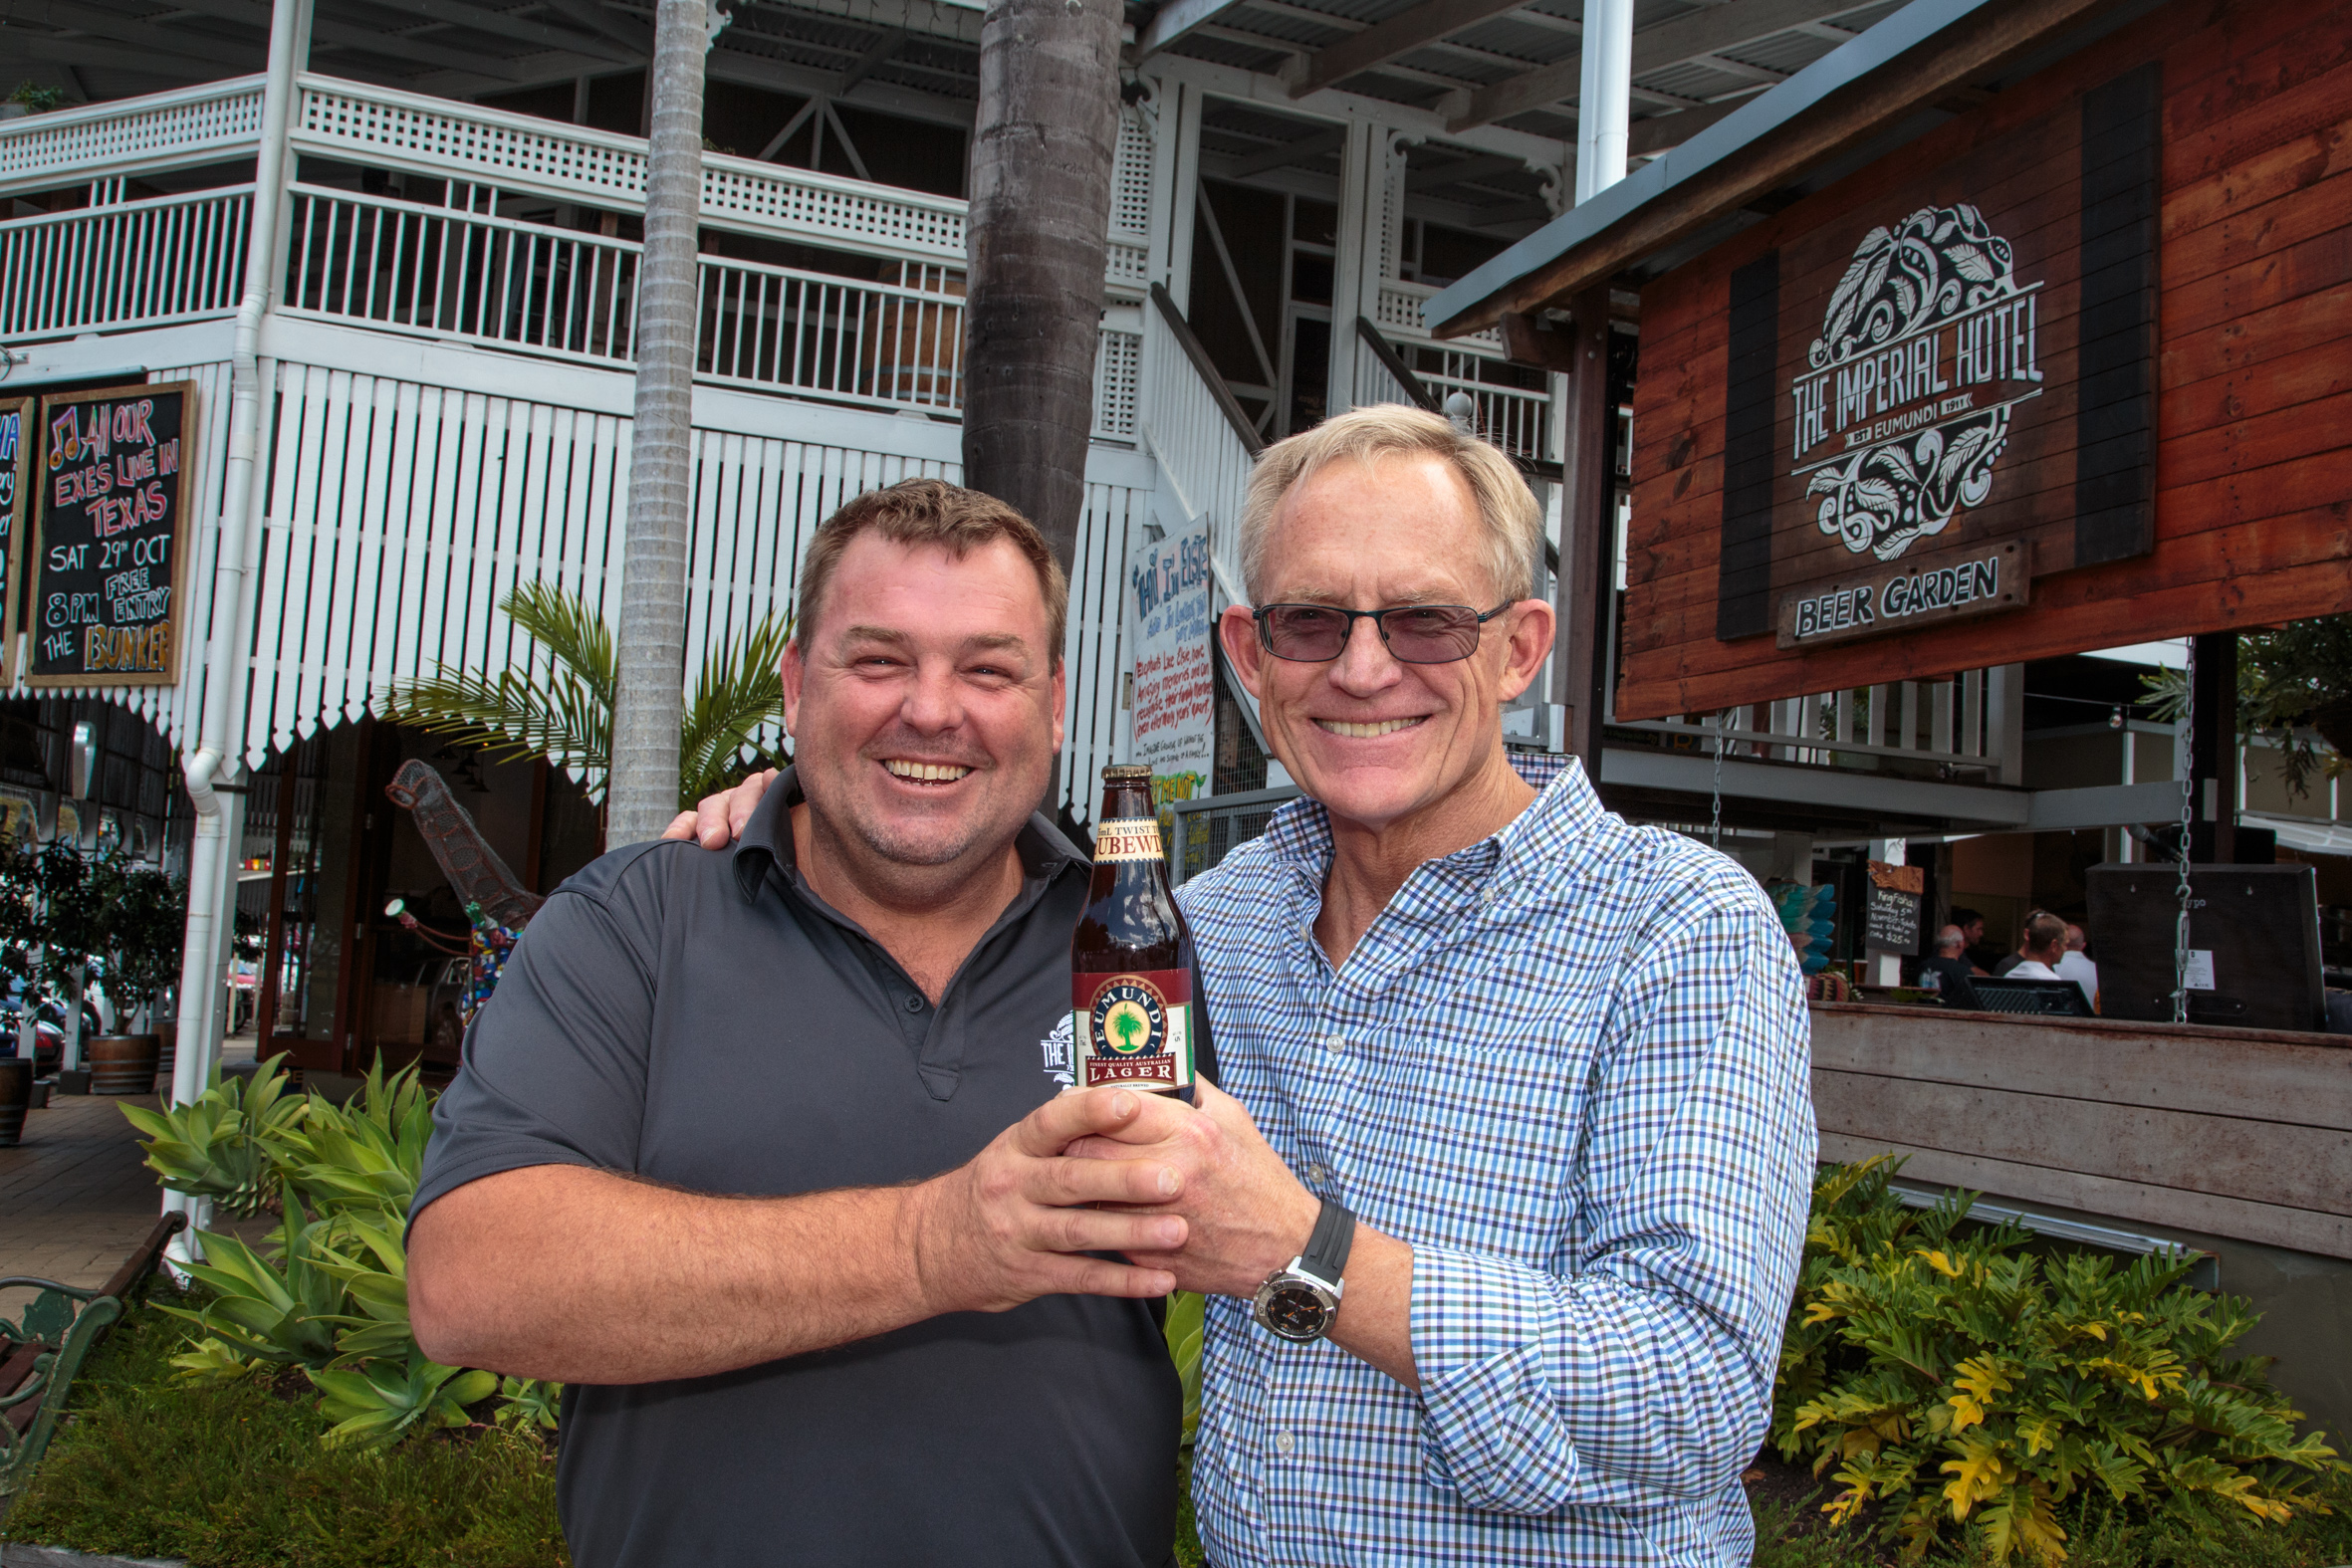 imperial-hotel-manager-brendan-fenlon-and-chuck-hahn-with-a-bottle-of-th